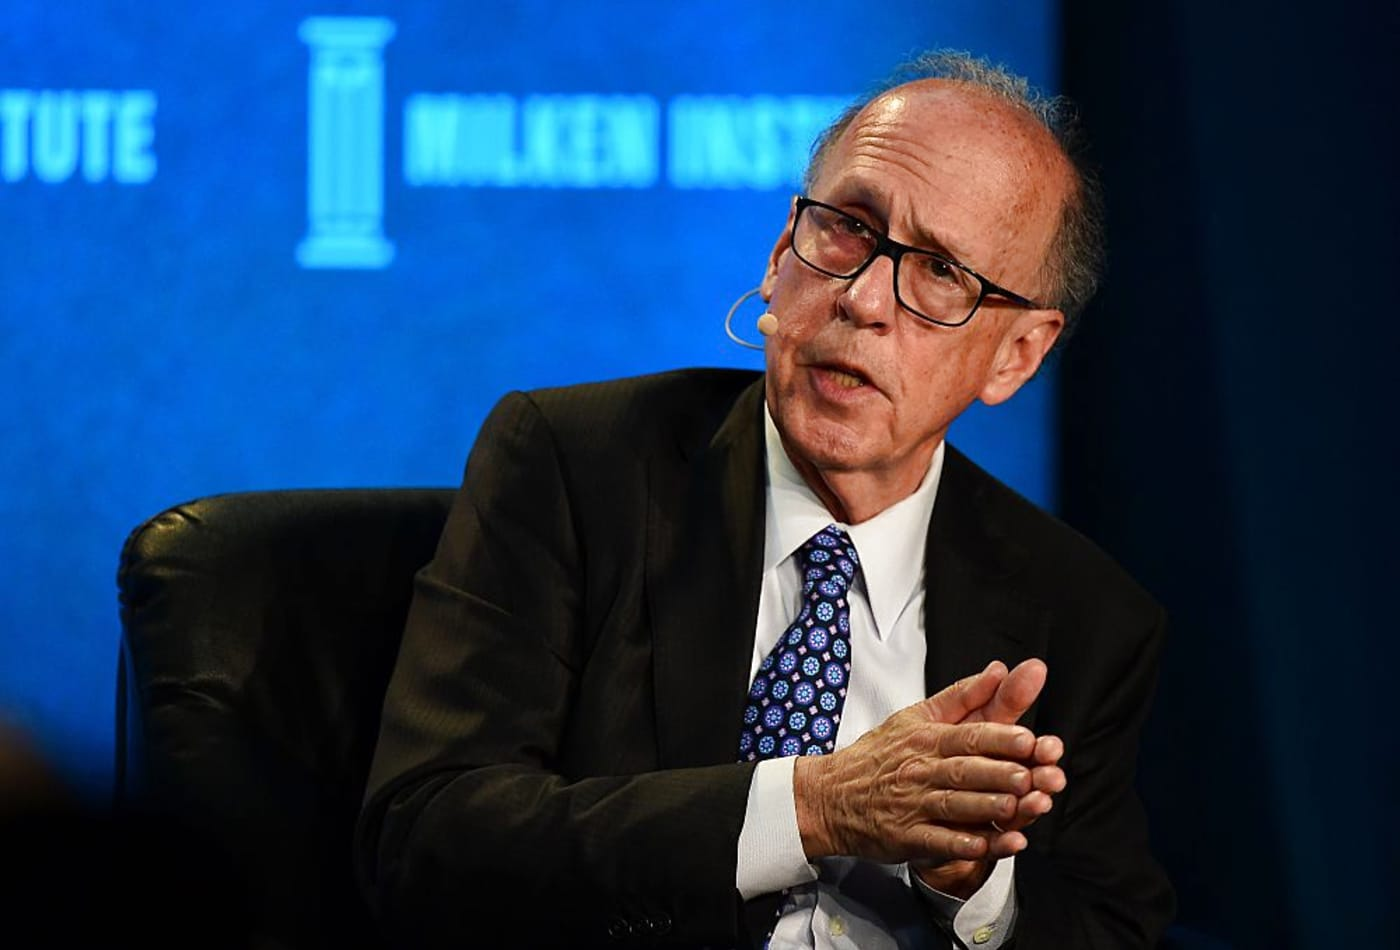 U.S. is on a collision course with a double-dip recession, economist Stephen Roach warns